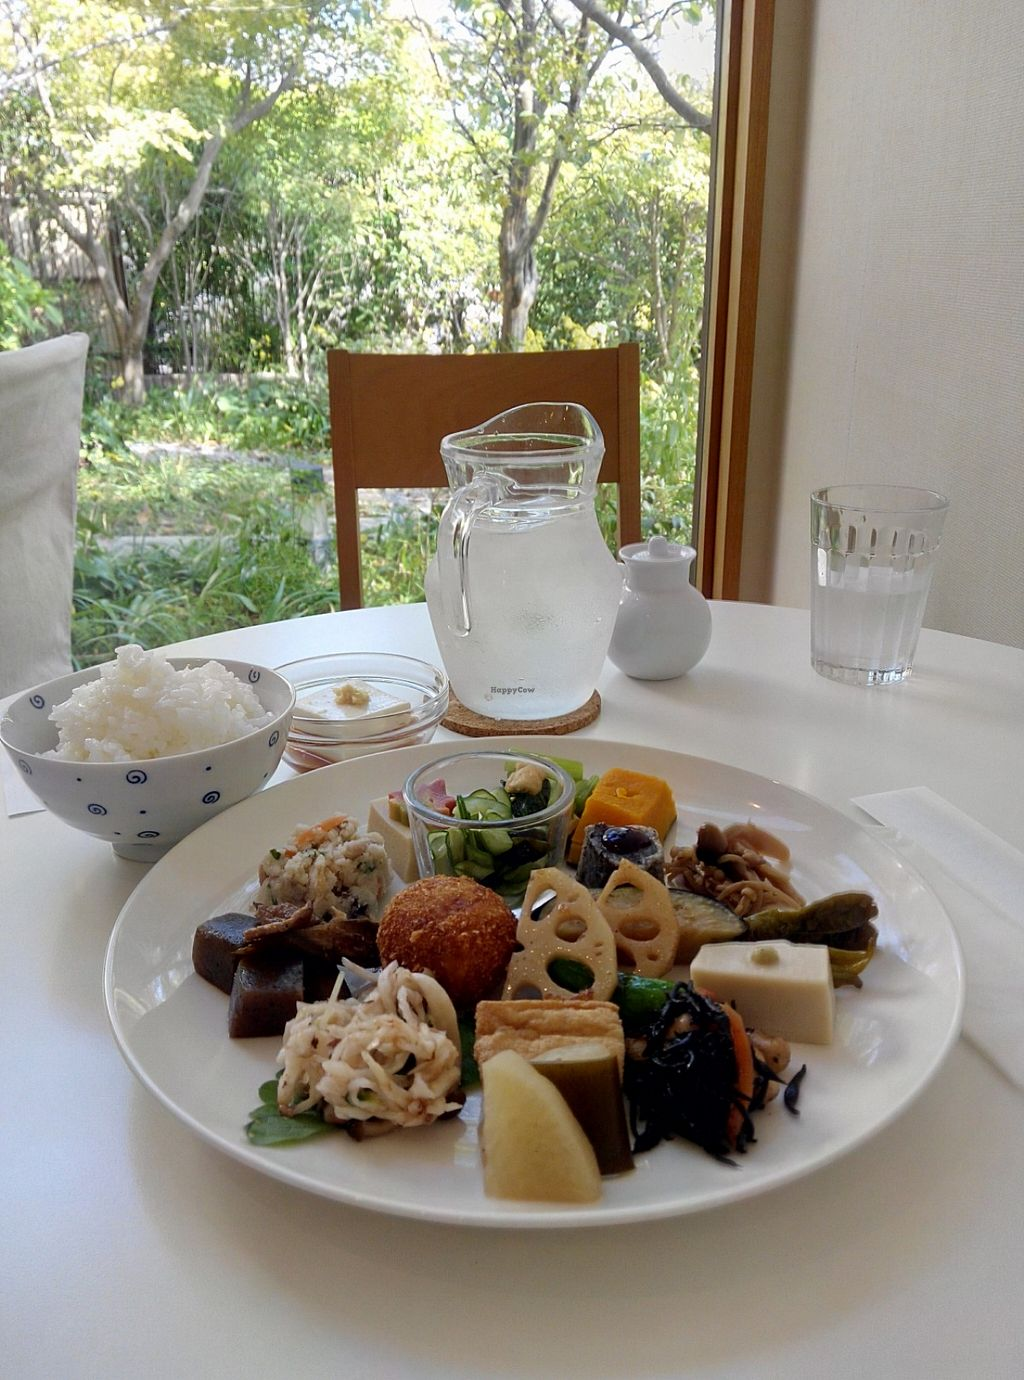 """Photo of Momi Cafe  by <a href=""""/members/profile/LaiNamKhim"""">LaiNamKhim</a> <br/>The Shyojin Ryori (temple vegetarian food) lunch set.  The cafe looks into a small garden and the ambiance is very nice <br/> October 28, 2015  - <a href='/contact/abuse/image/65086/122968'>Report</a>"""